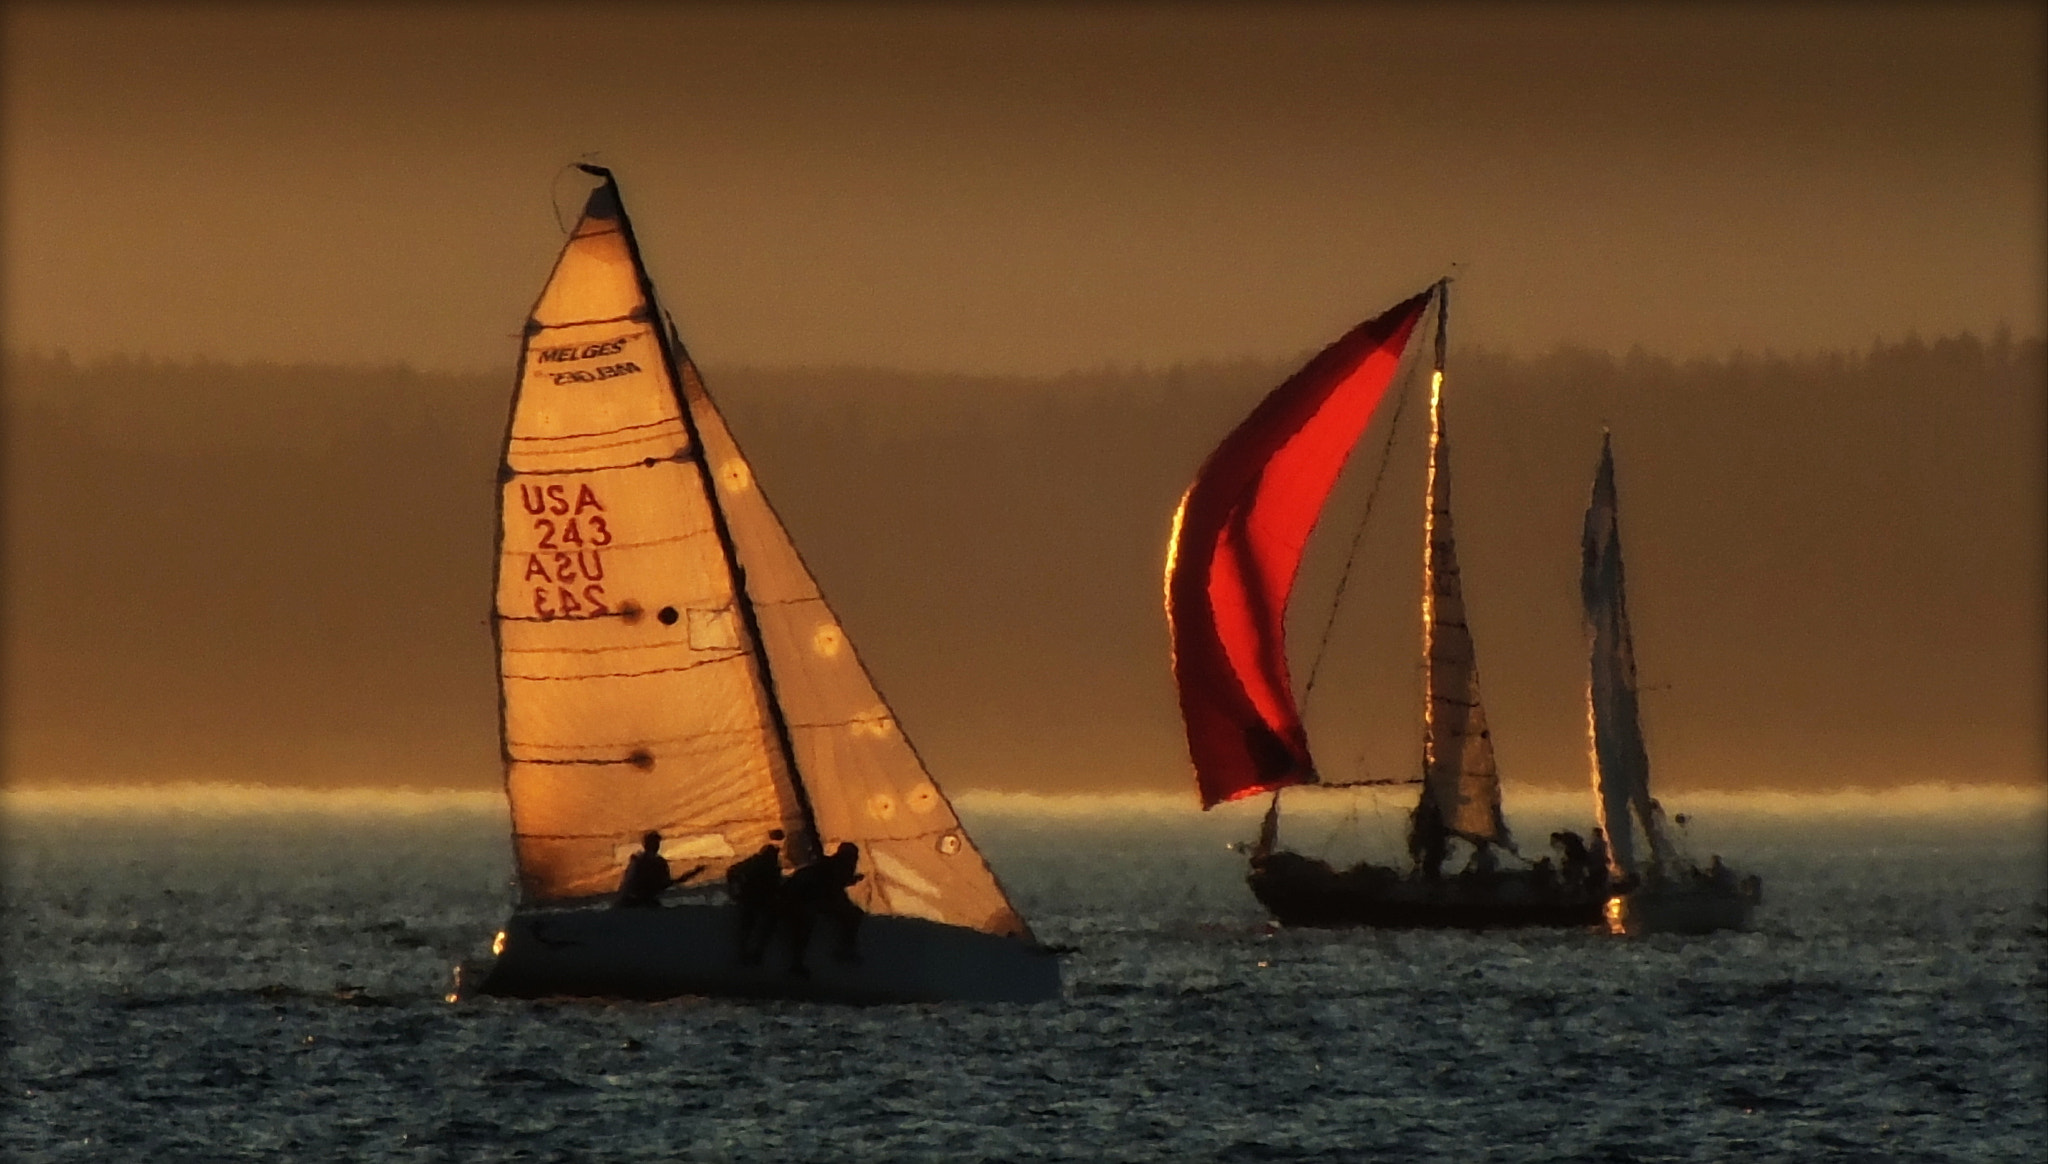 Photograph Summer for Sail by H. Becker on 500px